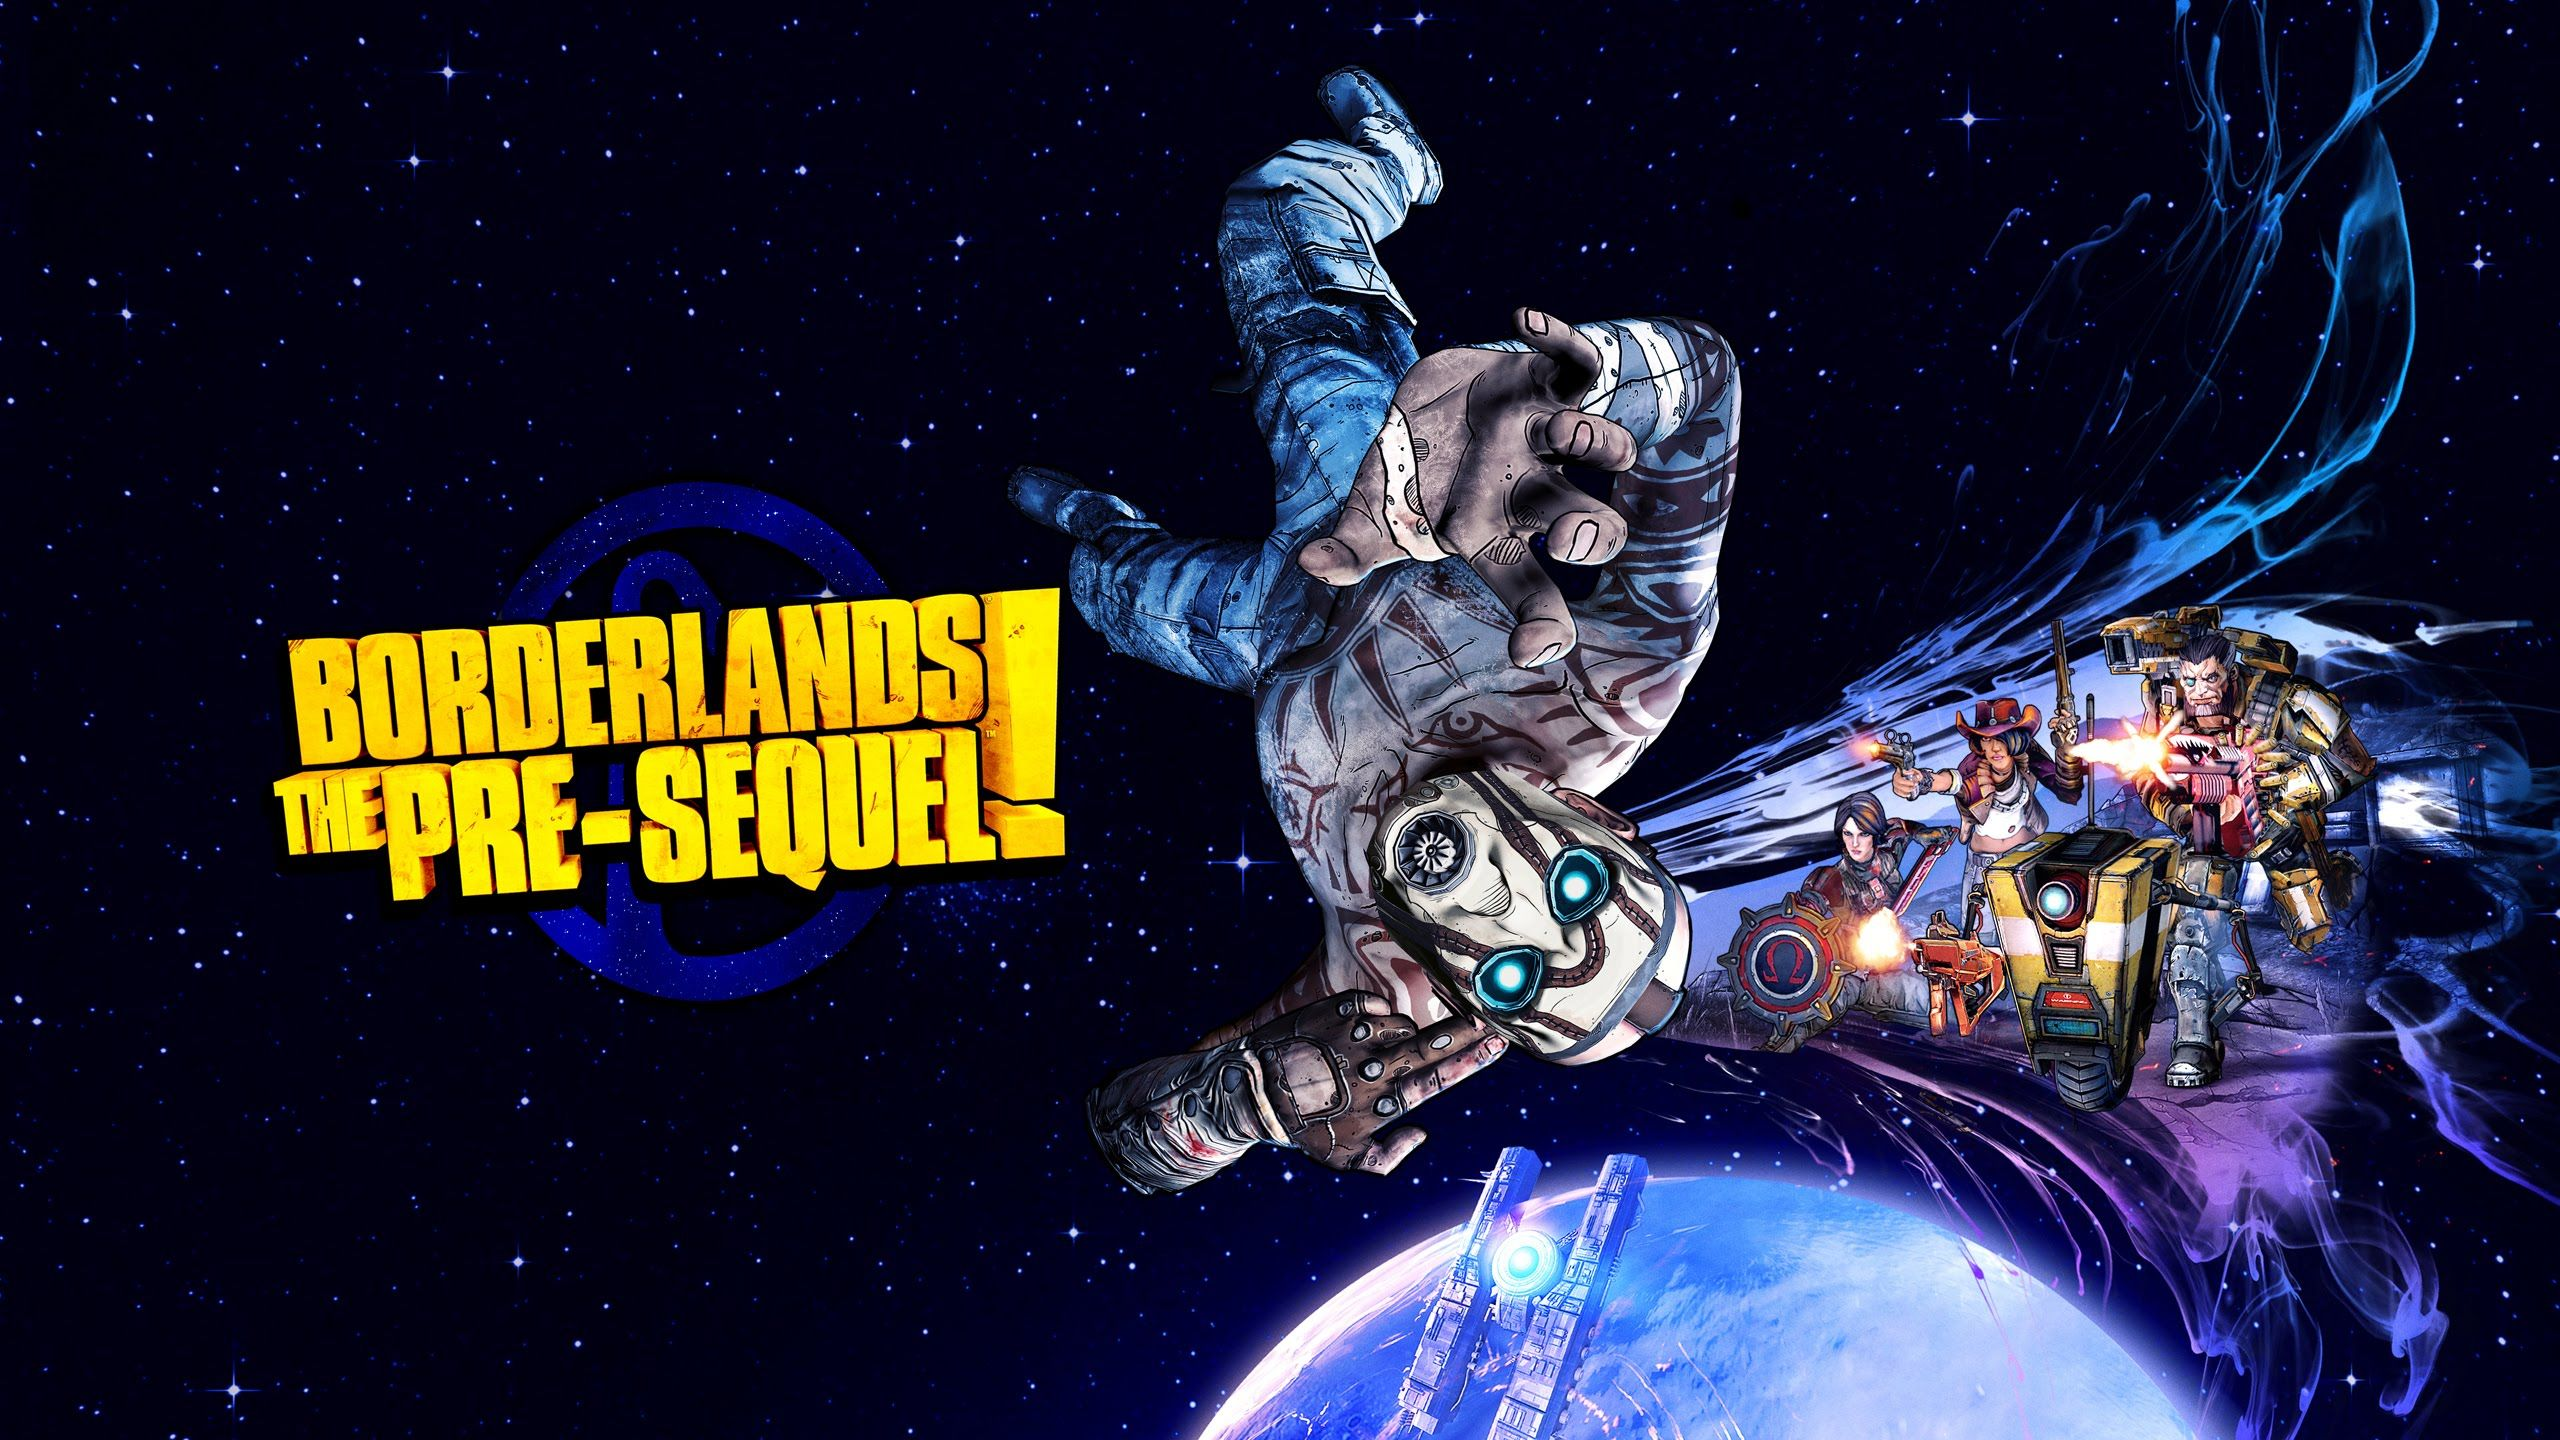 Borderlands The Pre Sequel! 1440p, Max Settings, Radeon R9 280X